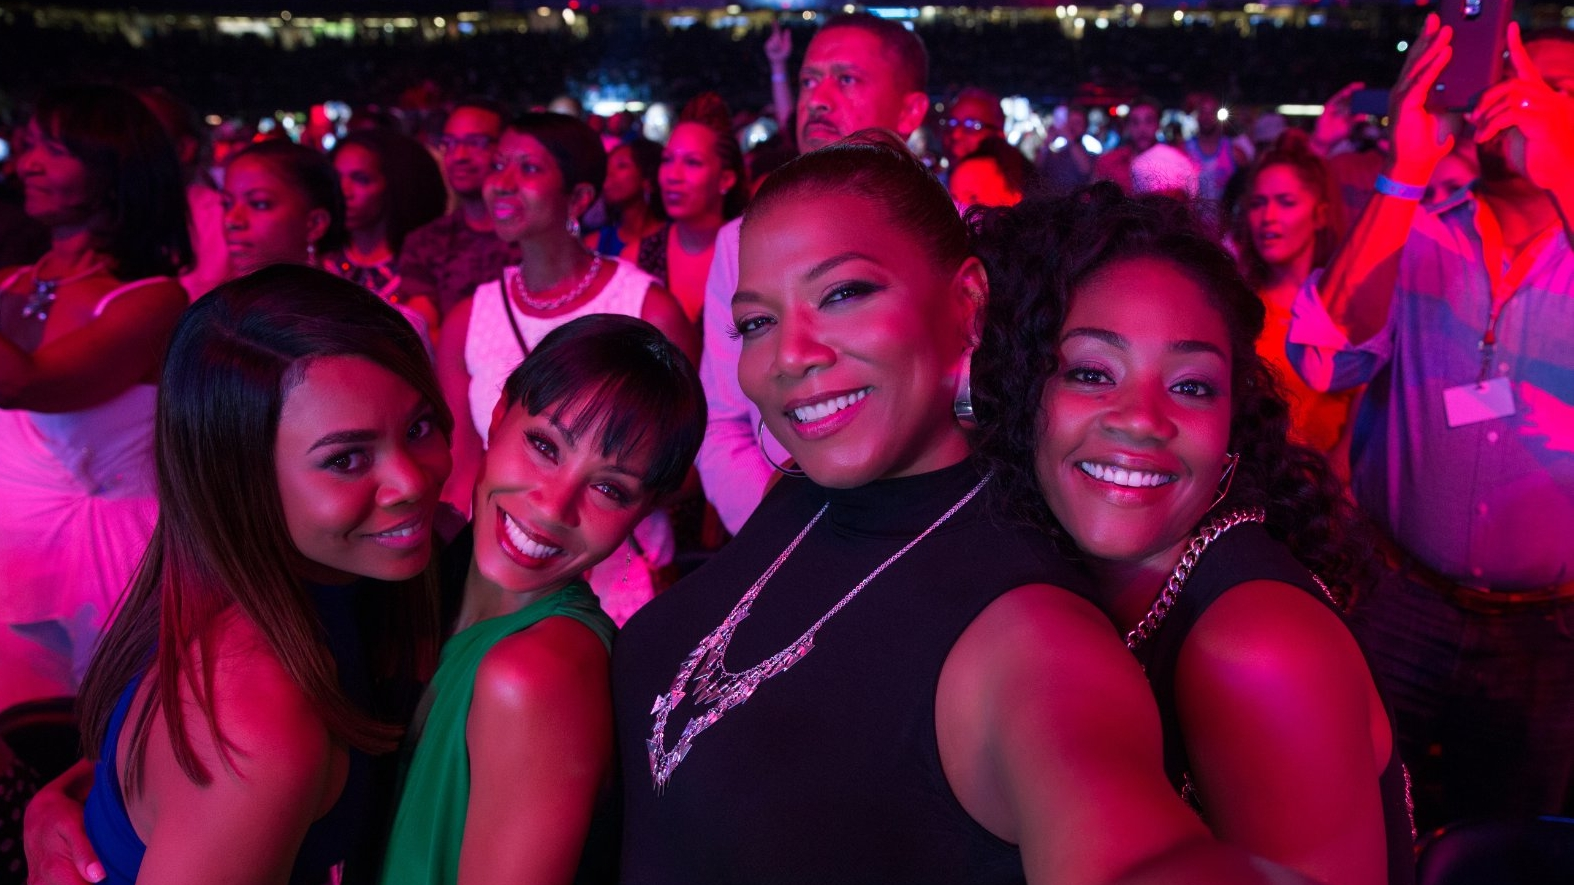 Malcolm D. Lee, girls trip, girls trip movie, Regina Hall, Tiffany Haddish, Larenz Tate, Mike Colter, Kate Walsh, Jada Pinkett Smith, Queen Latifah,